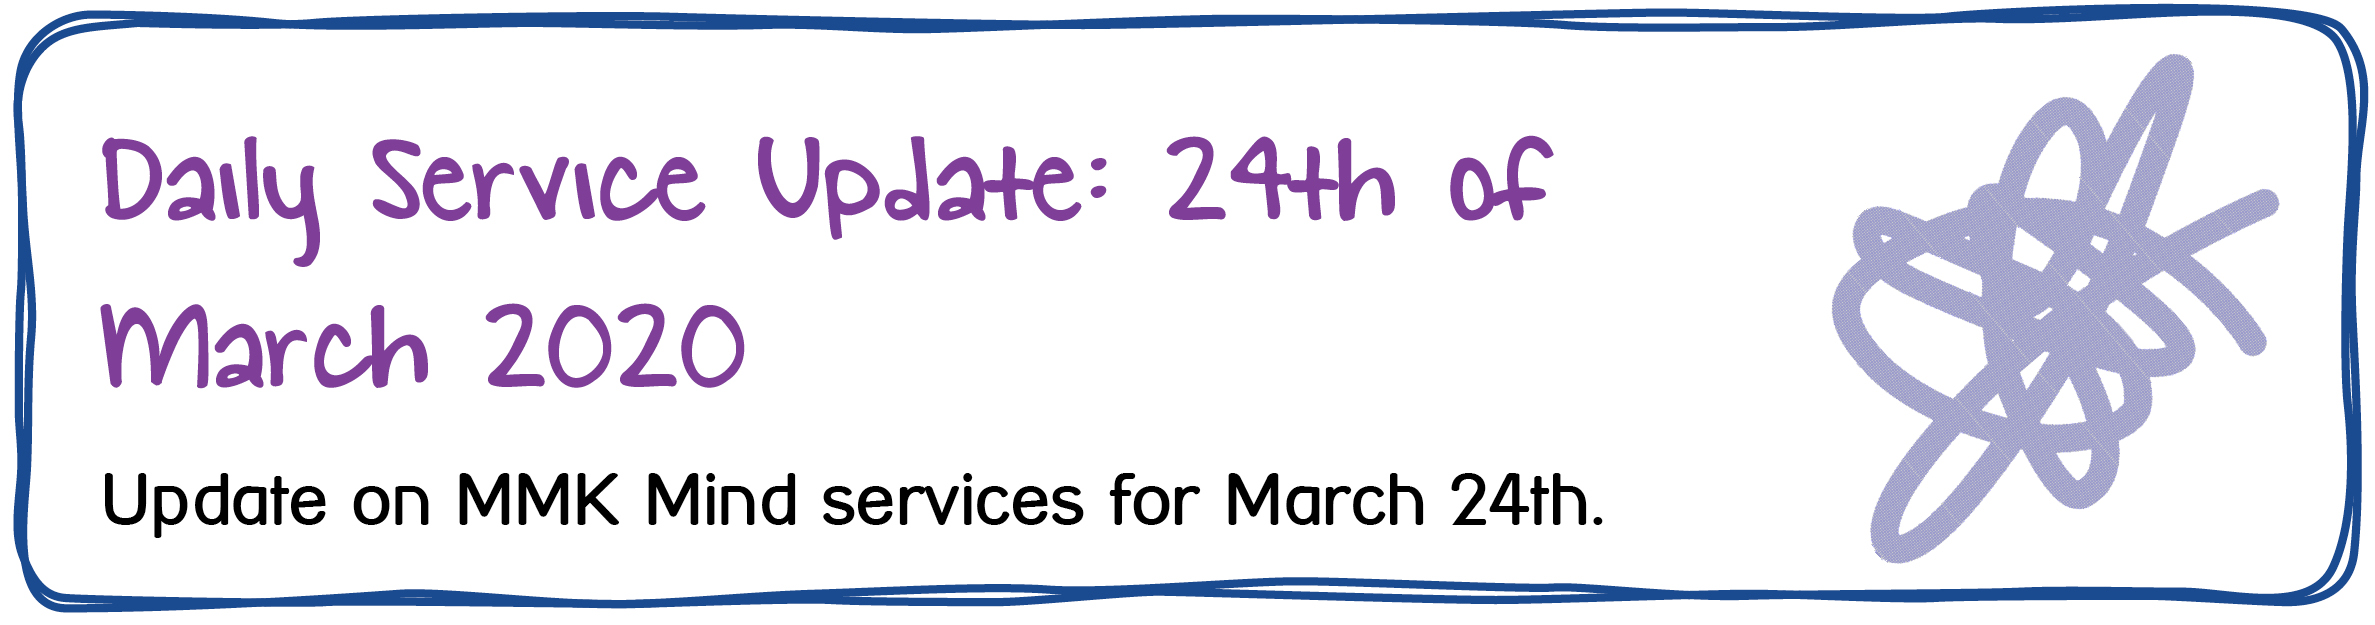 Daily Service Update: 24th of March 2020. Update on MMK Mind services for March 24th